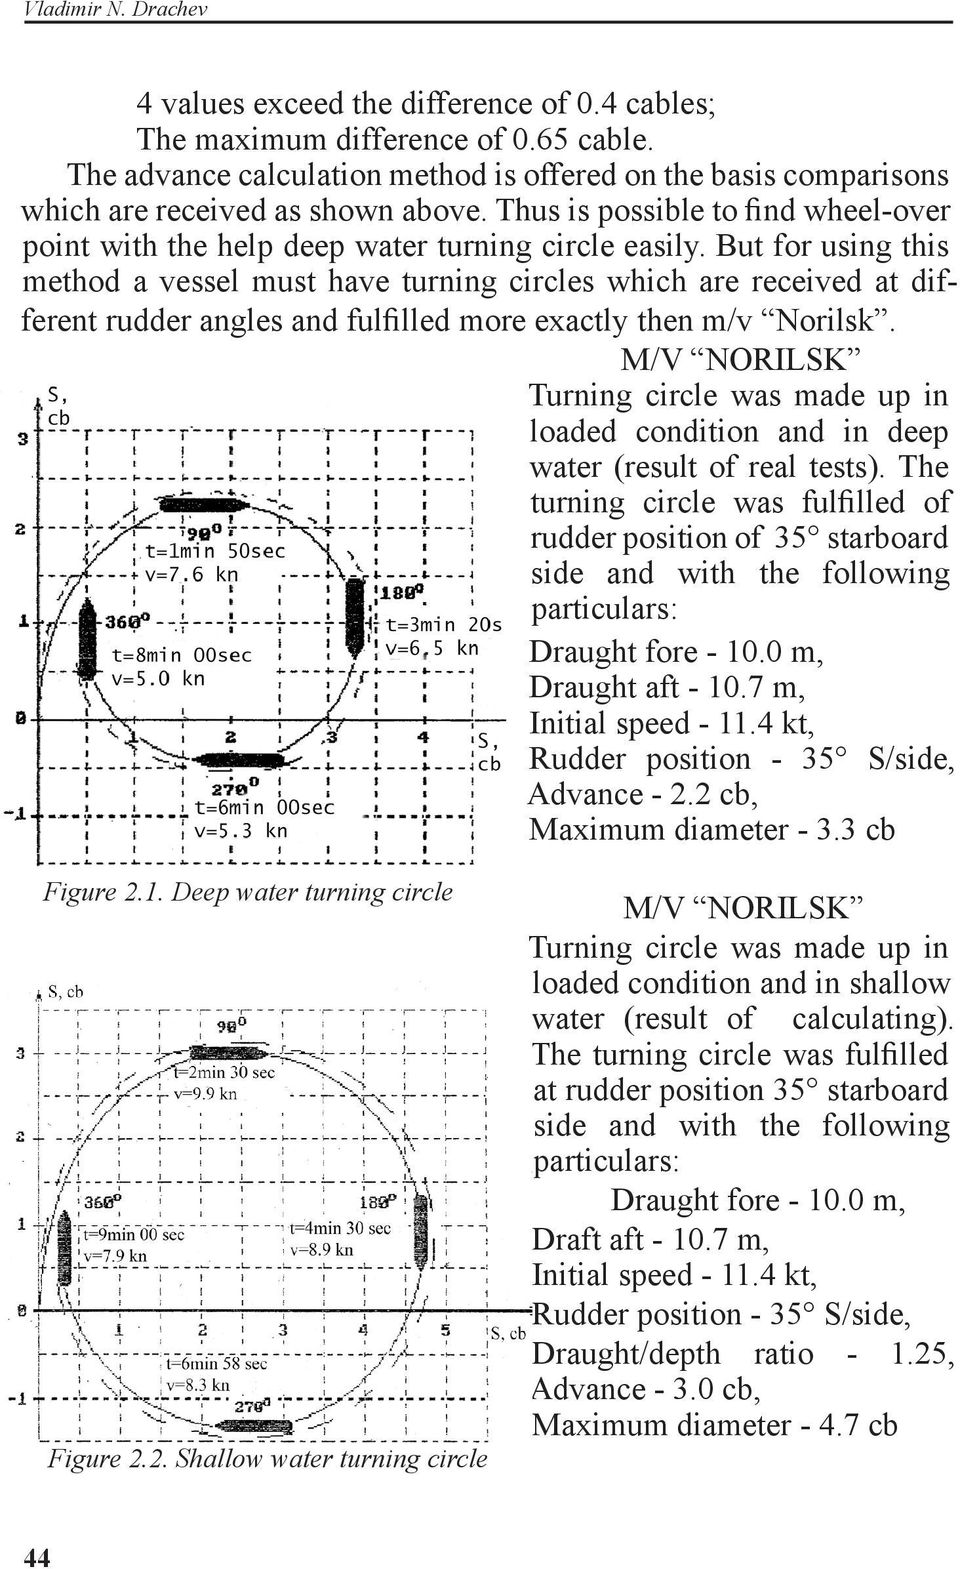 But for using this method a vessel must have turning circles which are received at different rudder angles and fulfilled more exactly then m/v Norilsk.